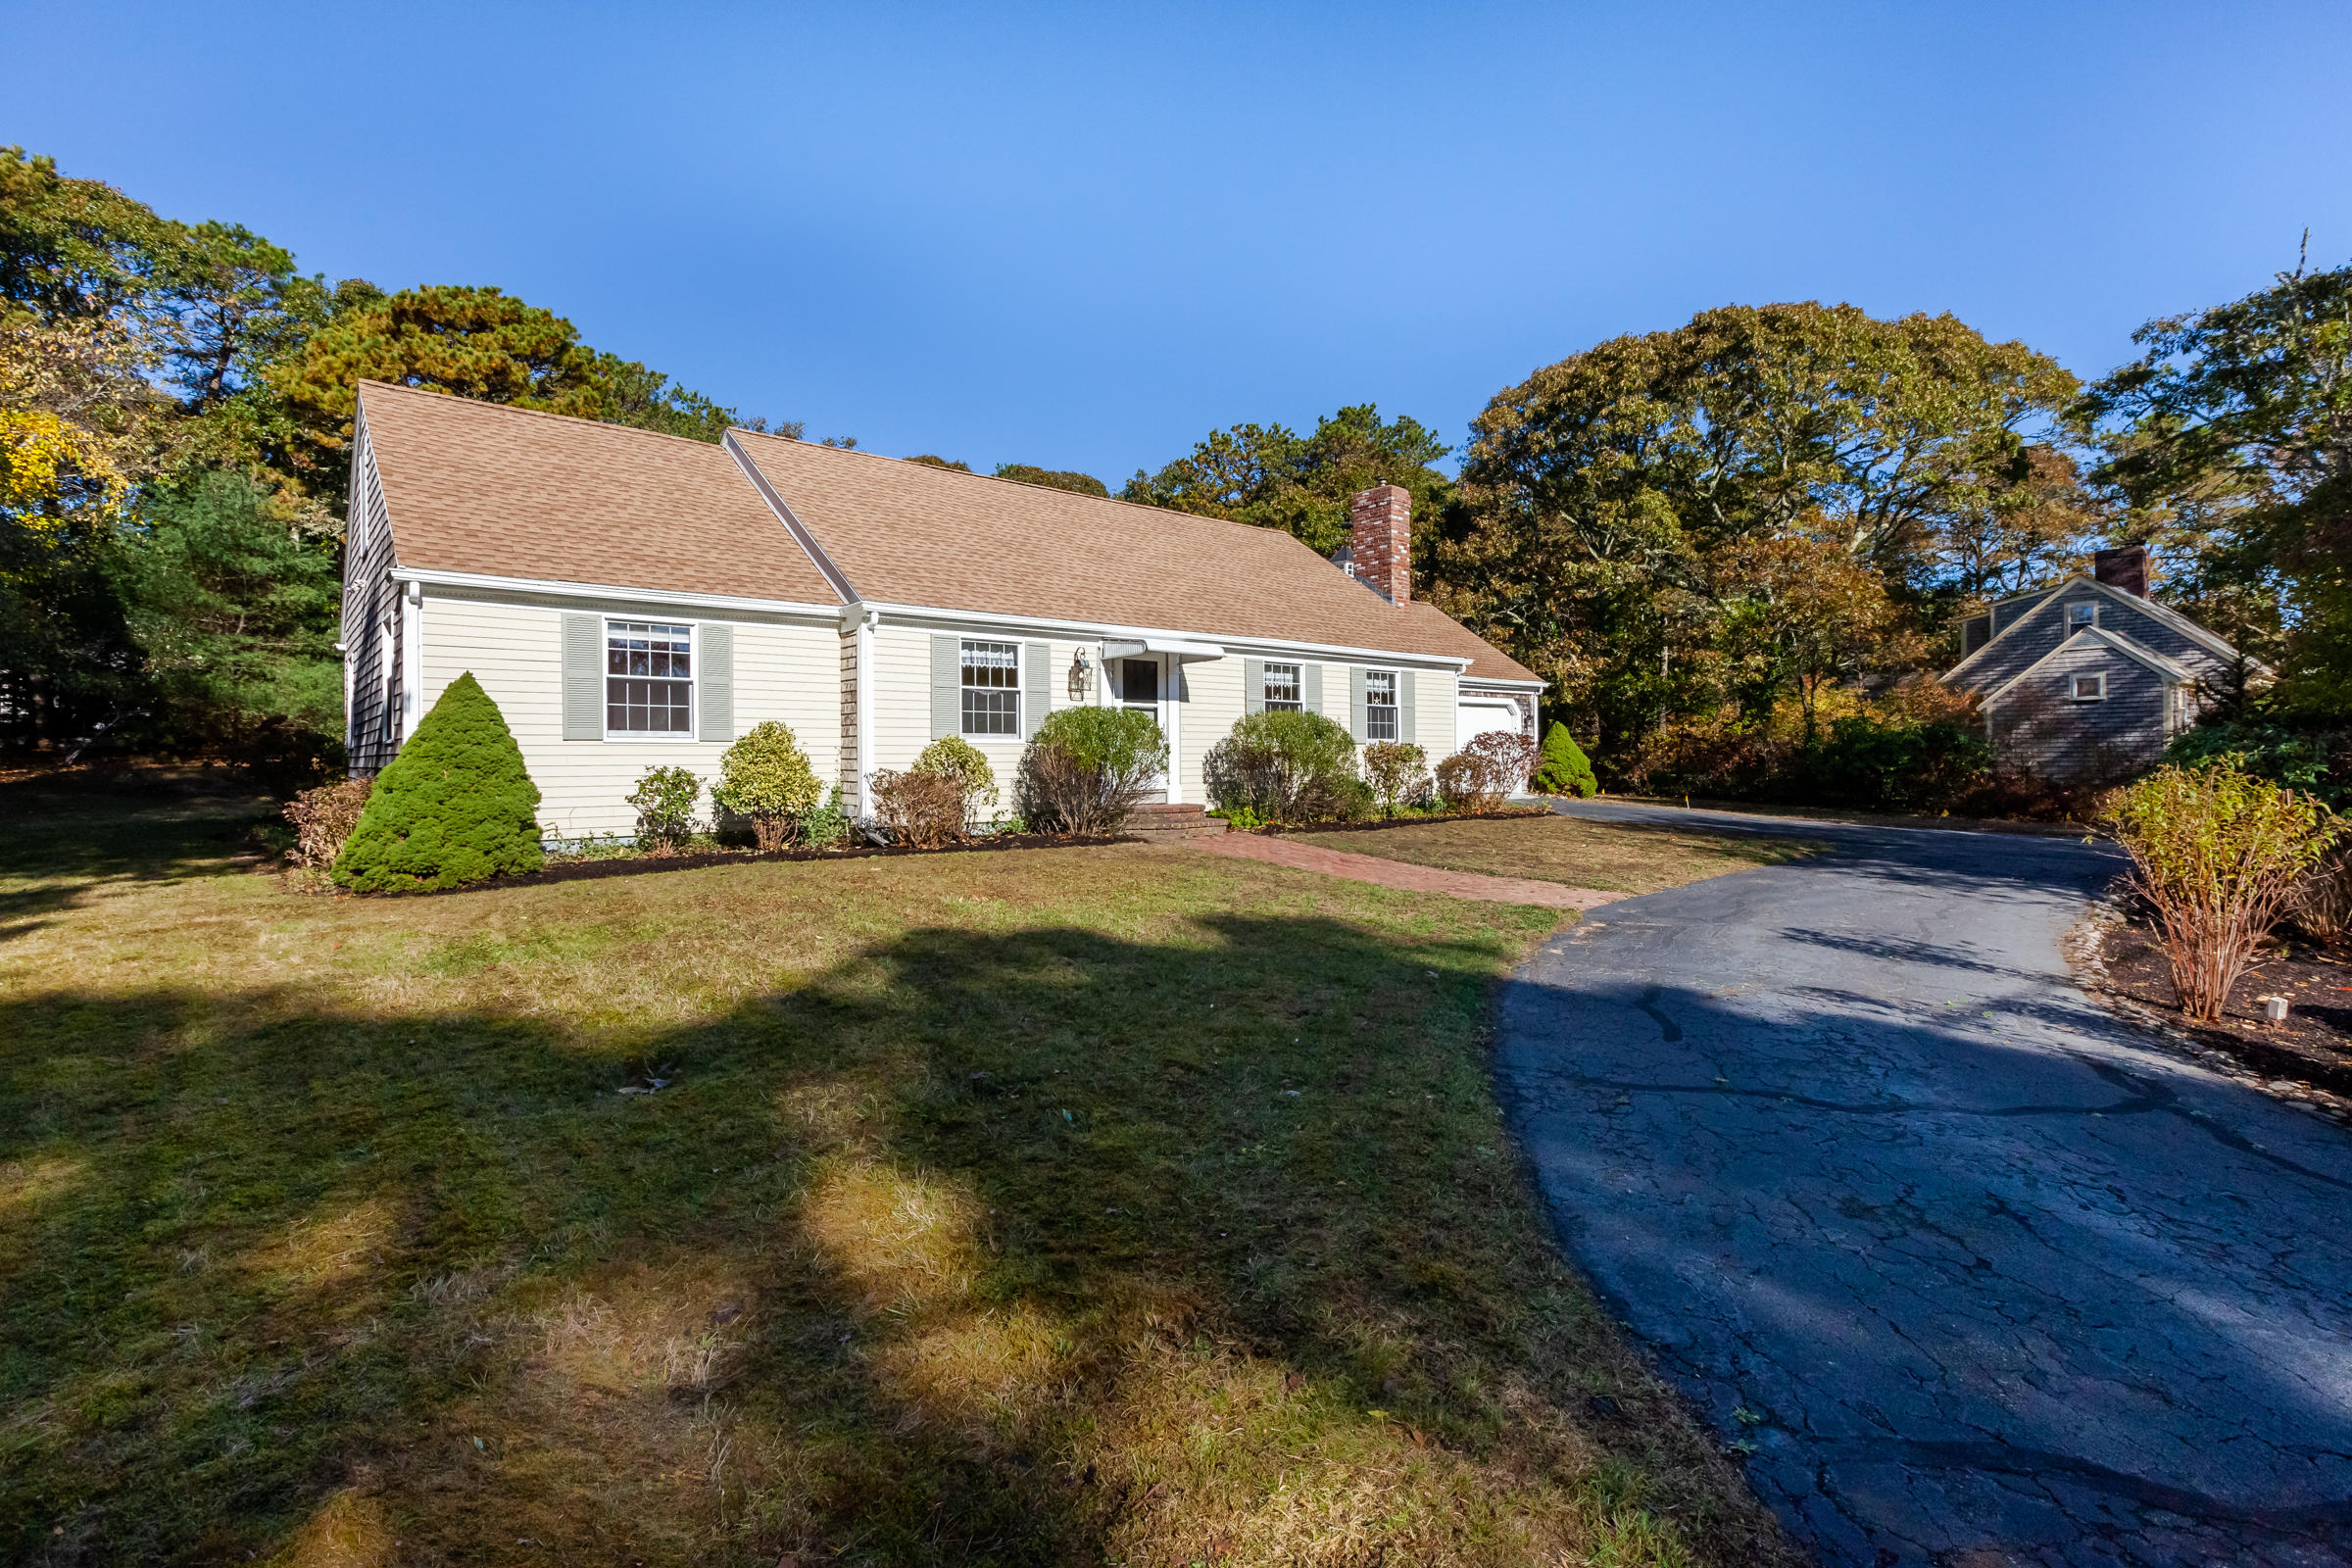 217 Round Cove Road, Chatham MA, 02633 sales details